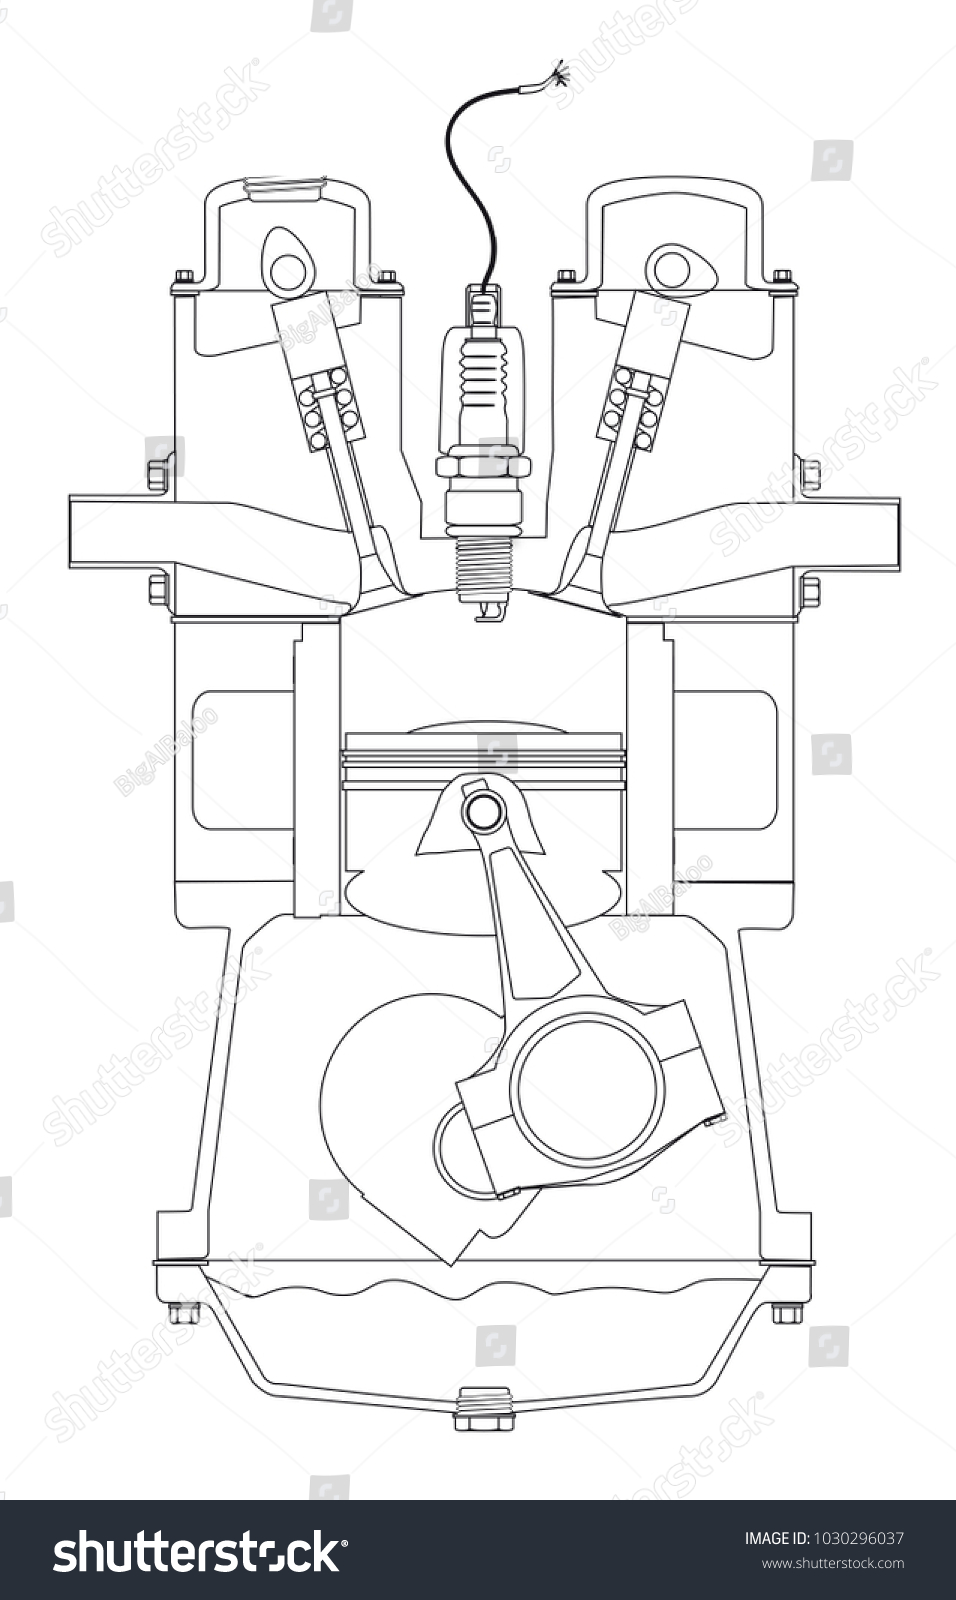 4 stroke petrol engine diagram 98 dodge durango headlight wiring royalty free stock illustration of four on a its ignition over white